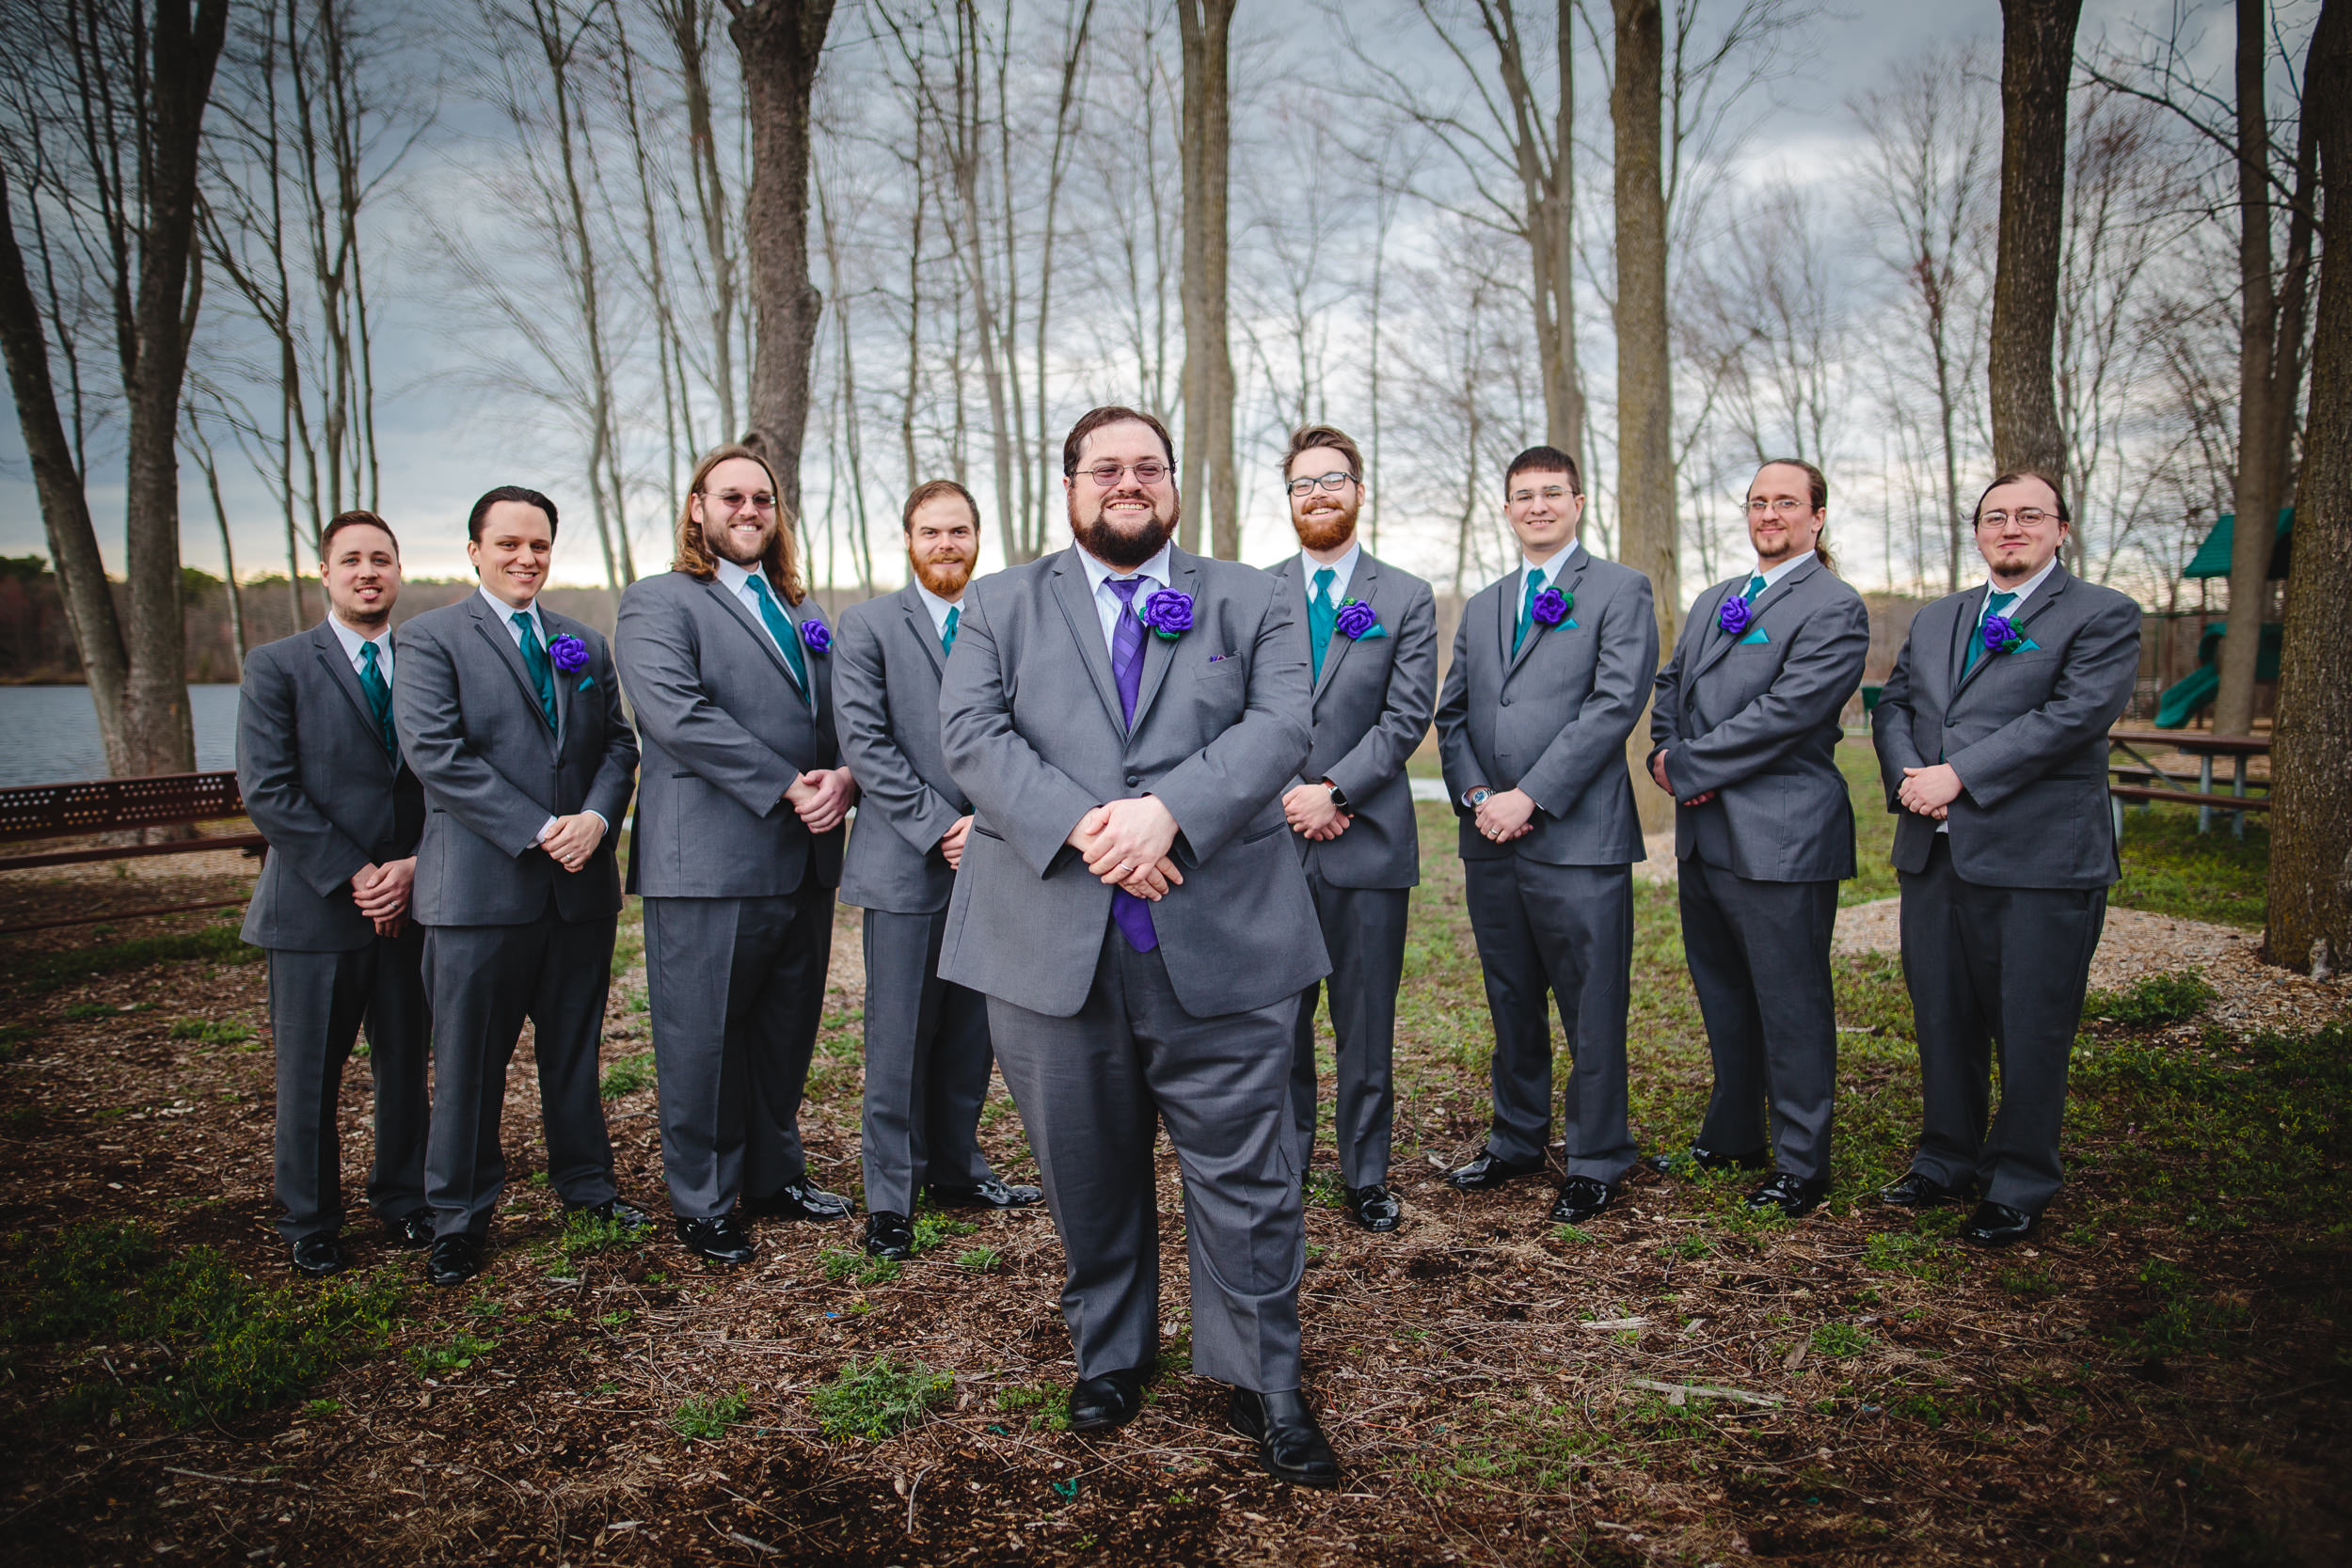 wedding groom grooms men portrait group shot jamesburg park nj